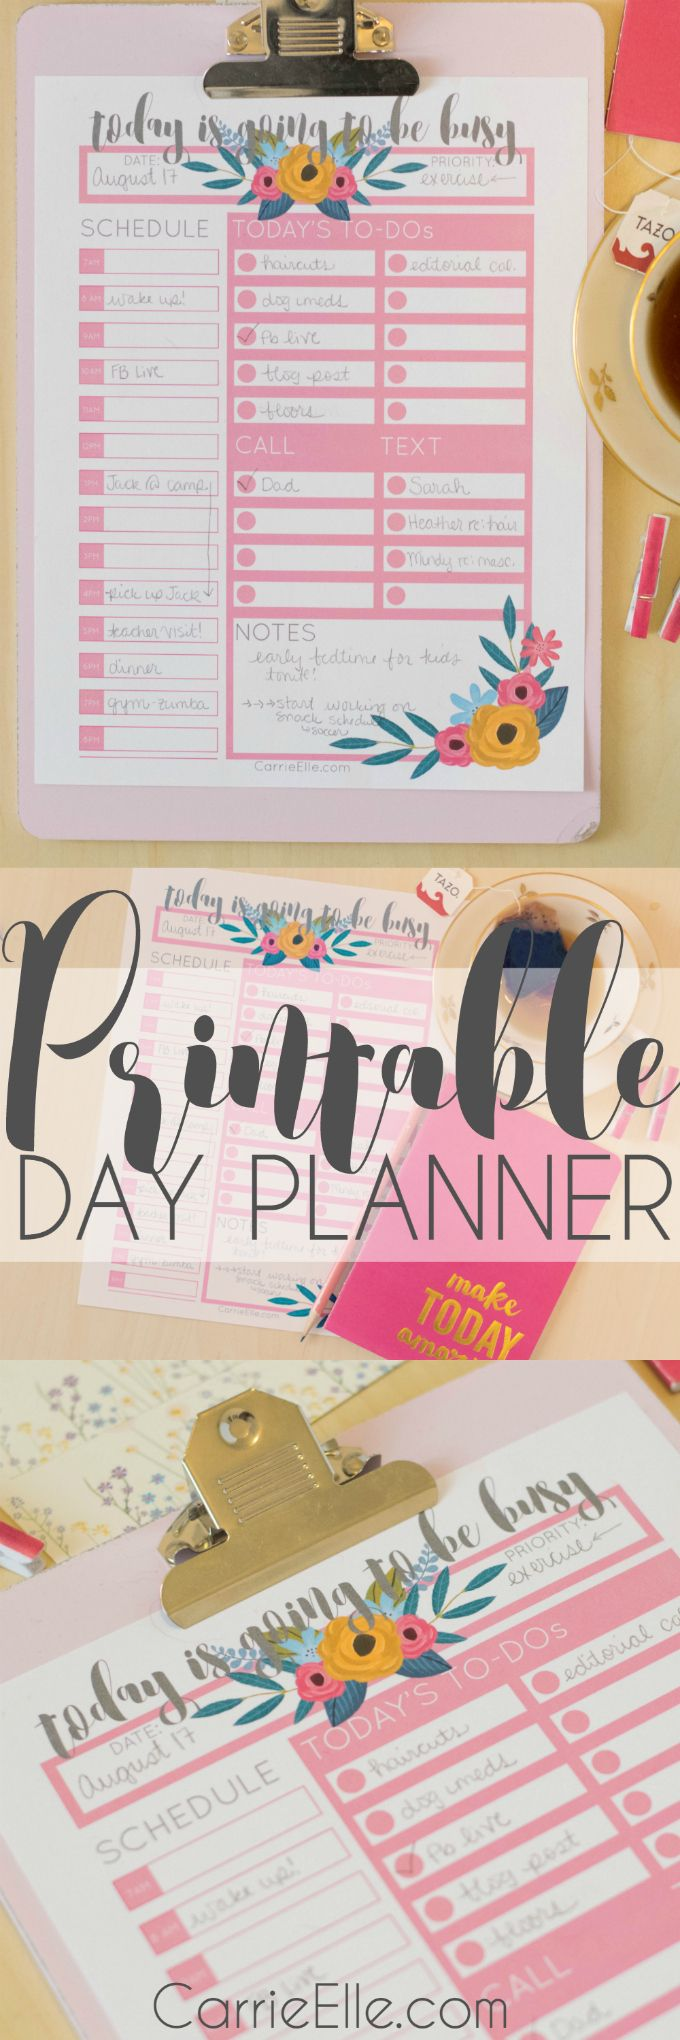 There's Nothing Quite Like a Cup of Tea {and a Printable Day Planner!}